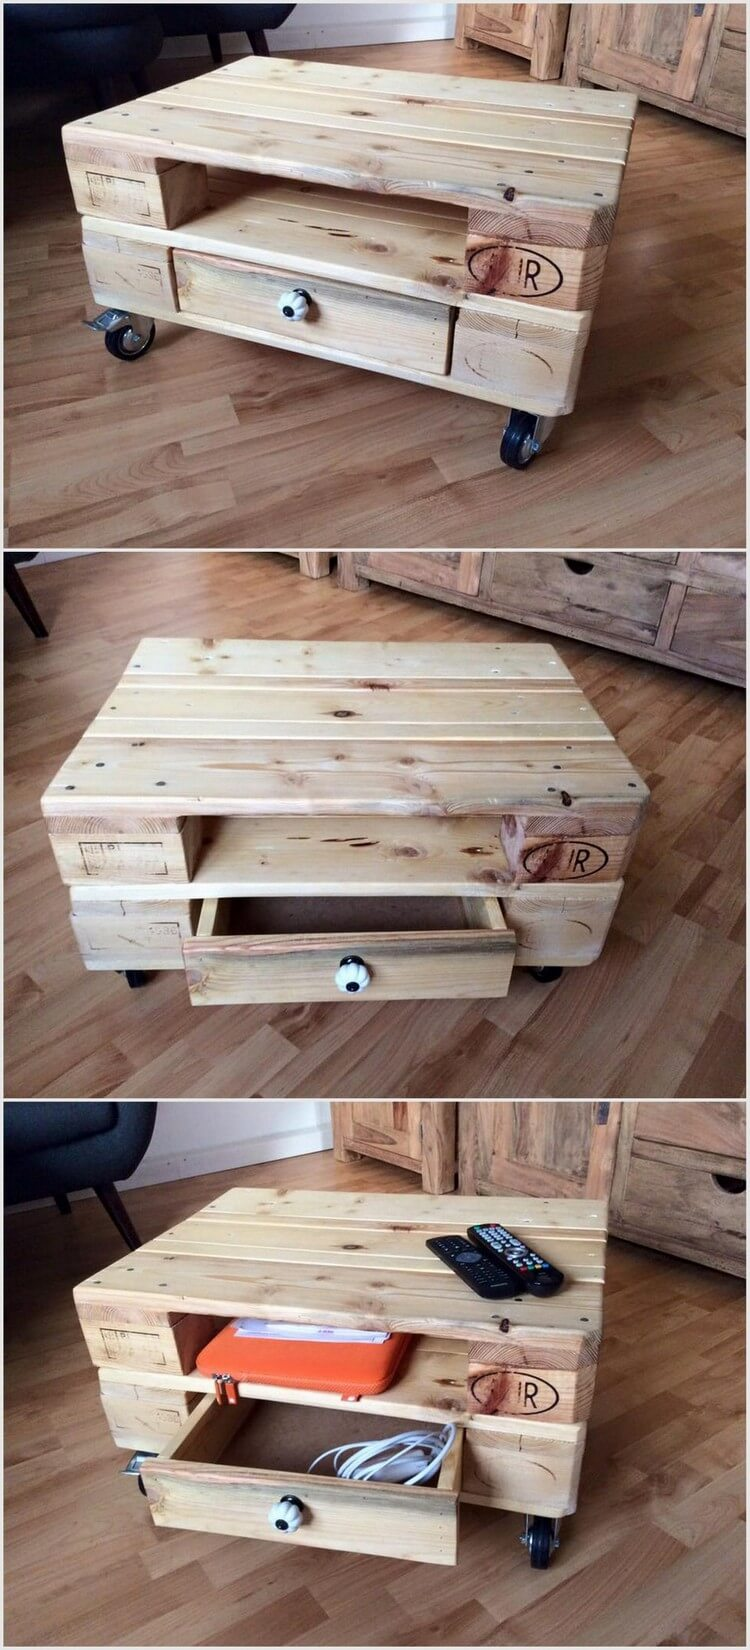 used shipping wood pallets table ideas pallet wood projects. Black Bedroom Furniture Sets. Home Design Ideas